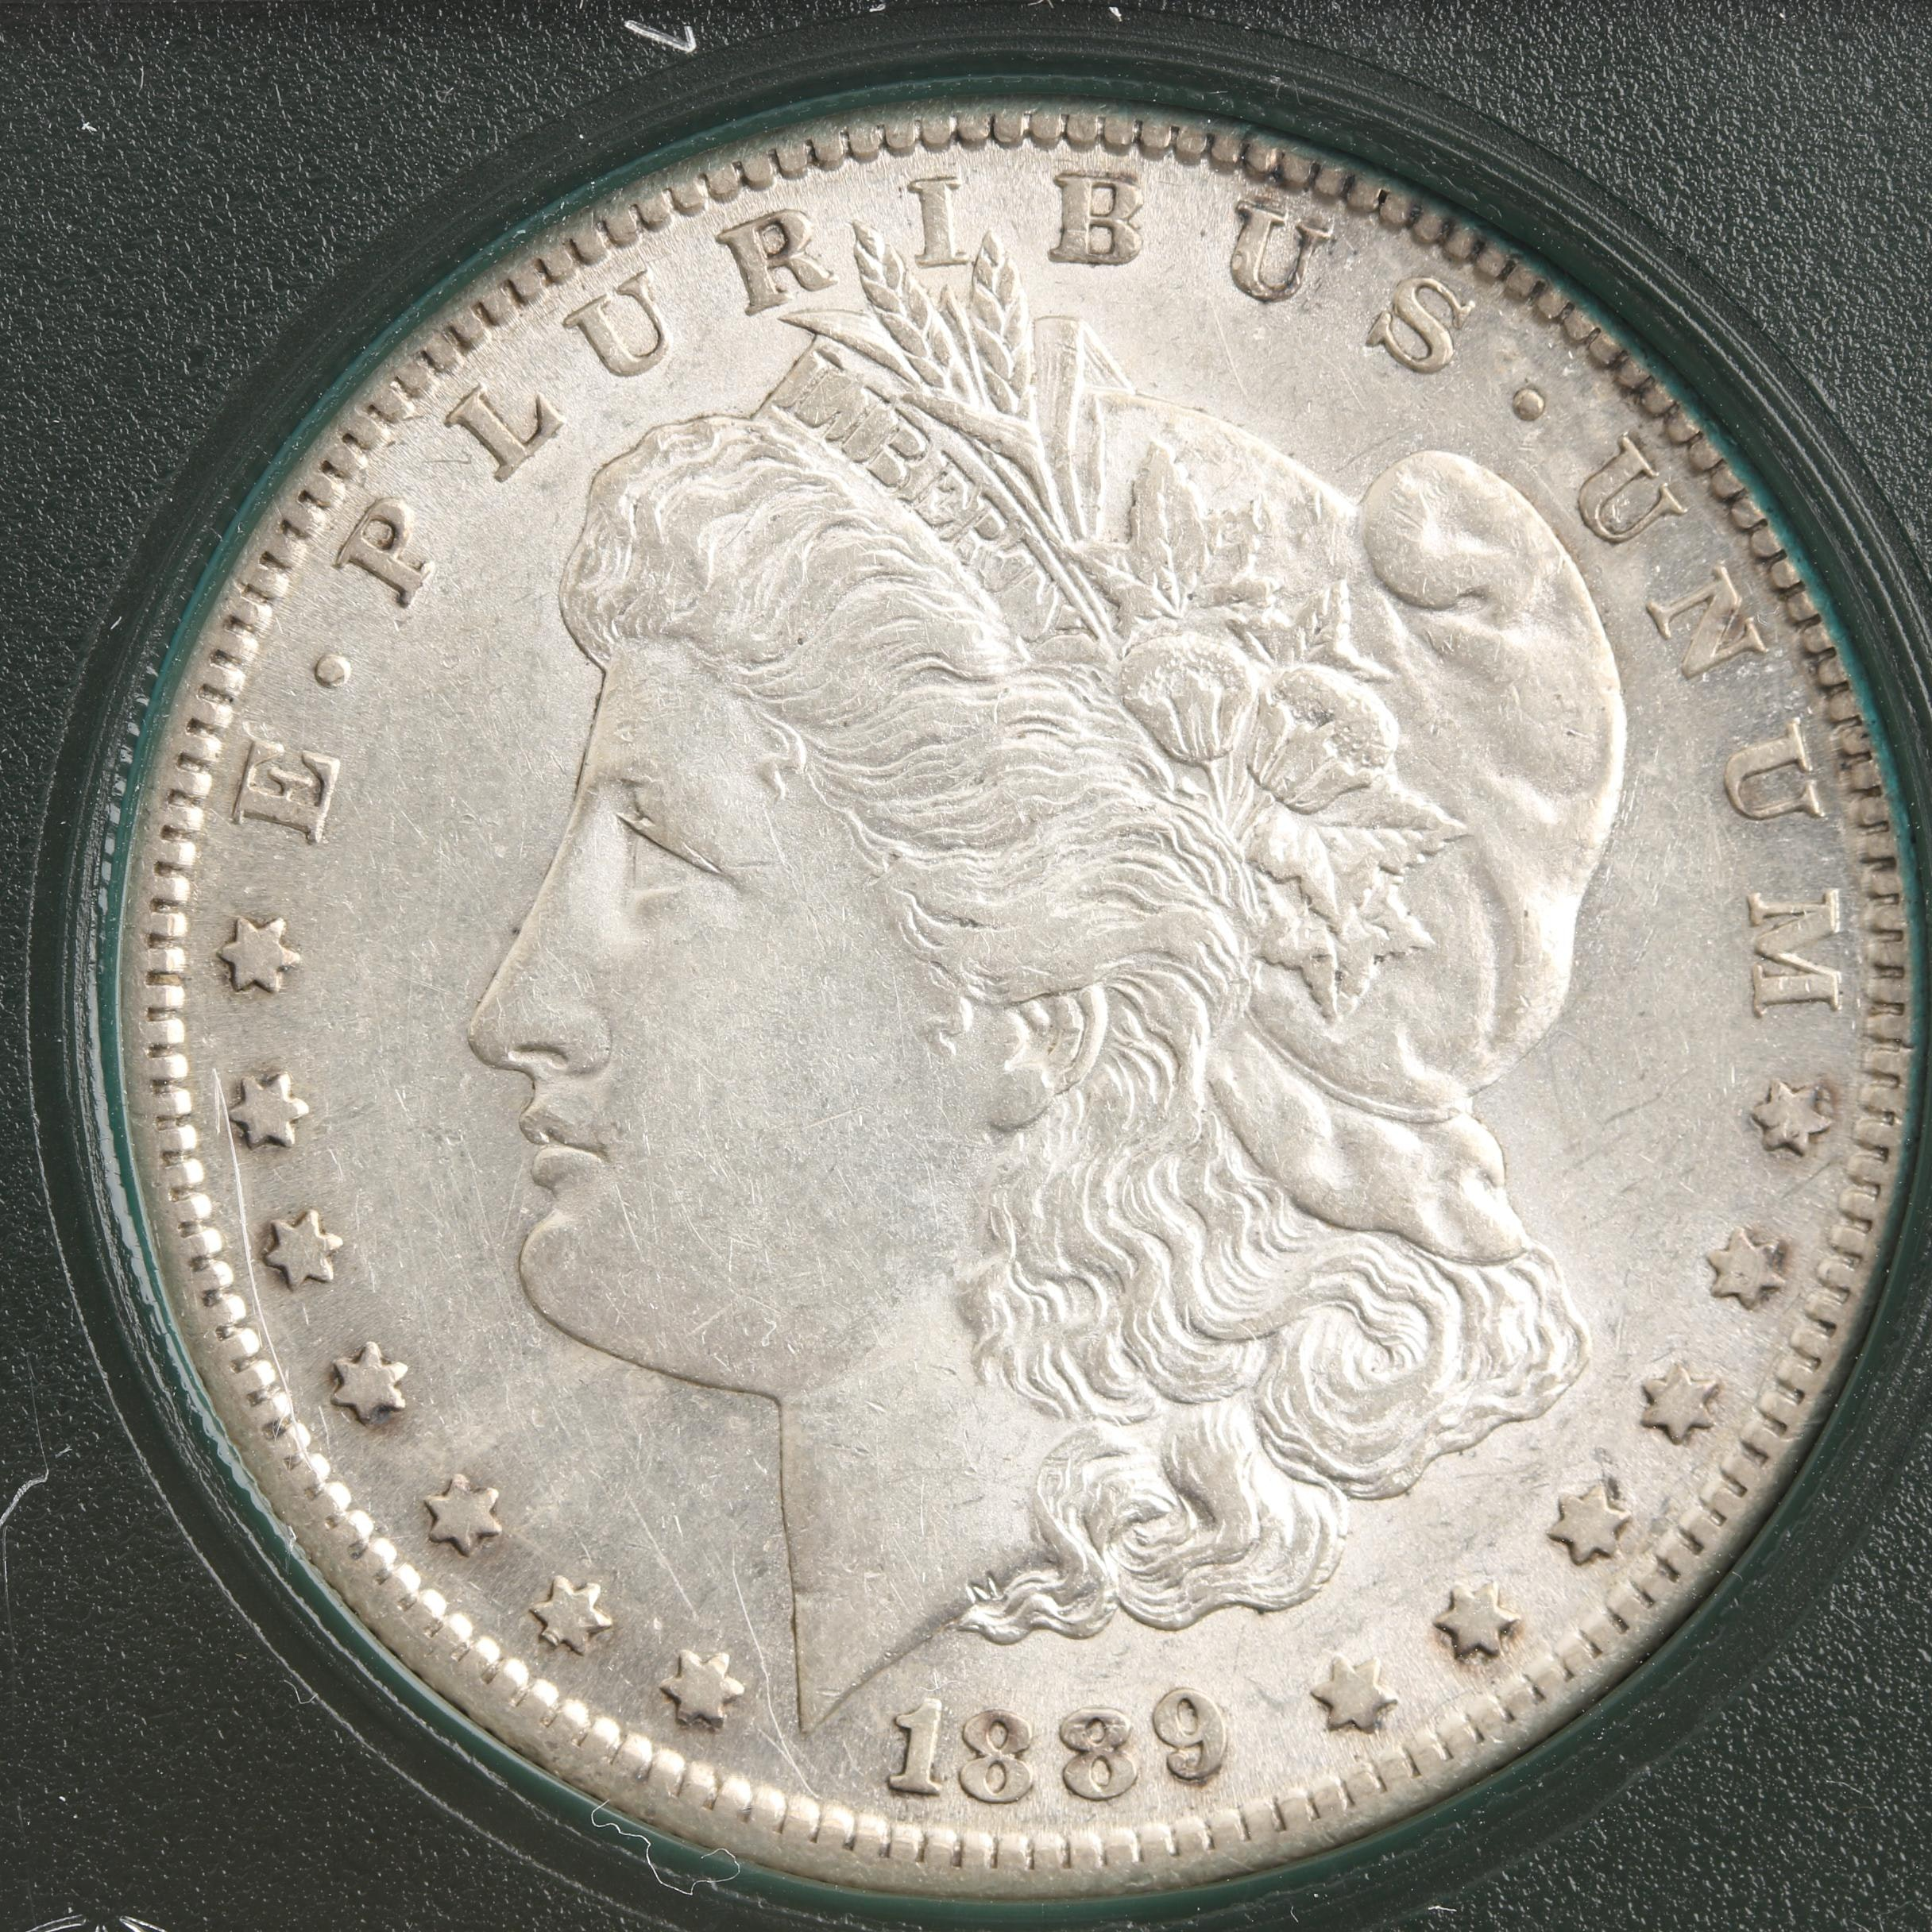 Low Mintage 1889-S Silver Morgan Dollar